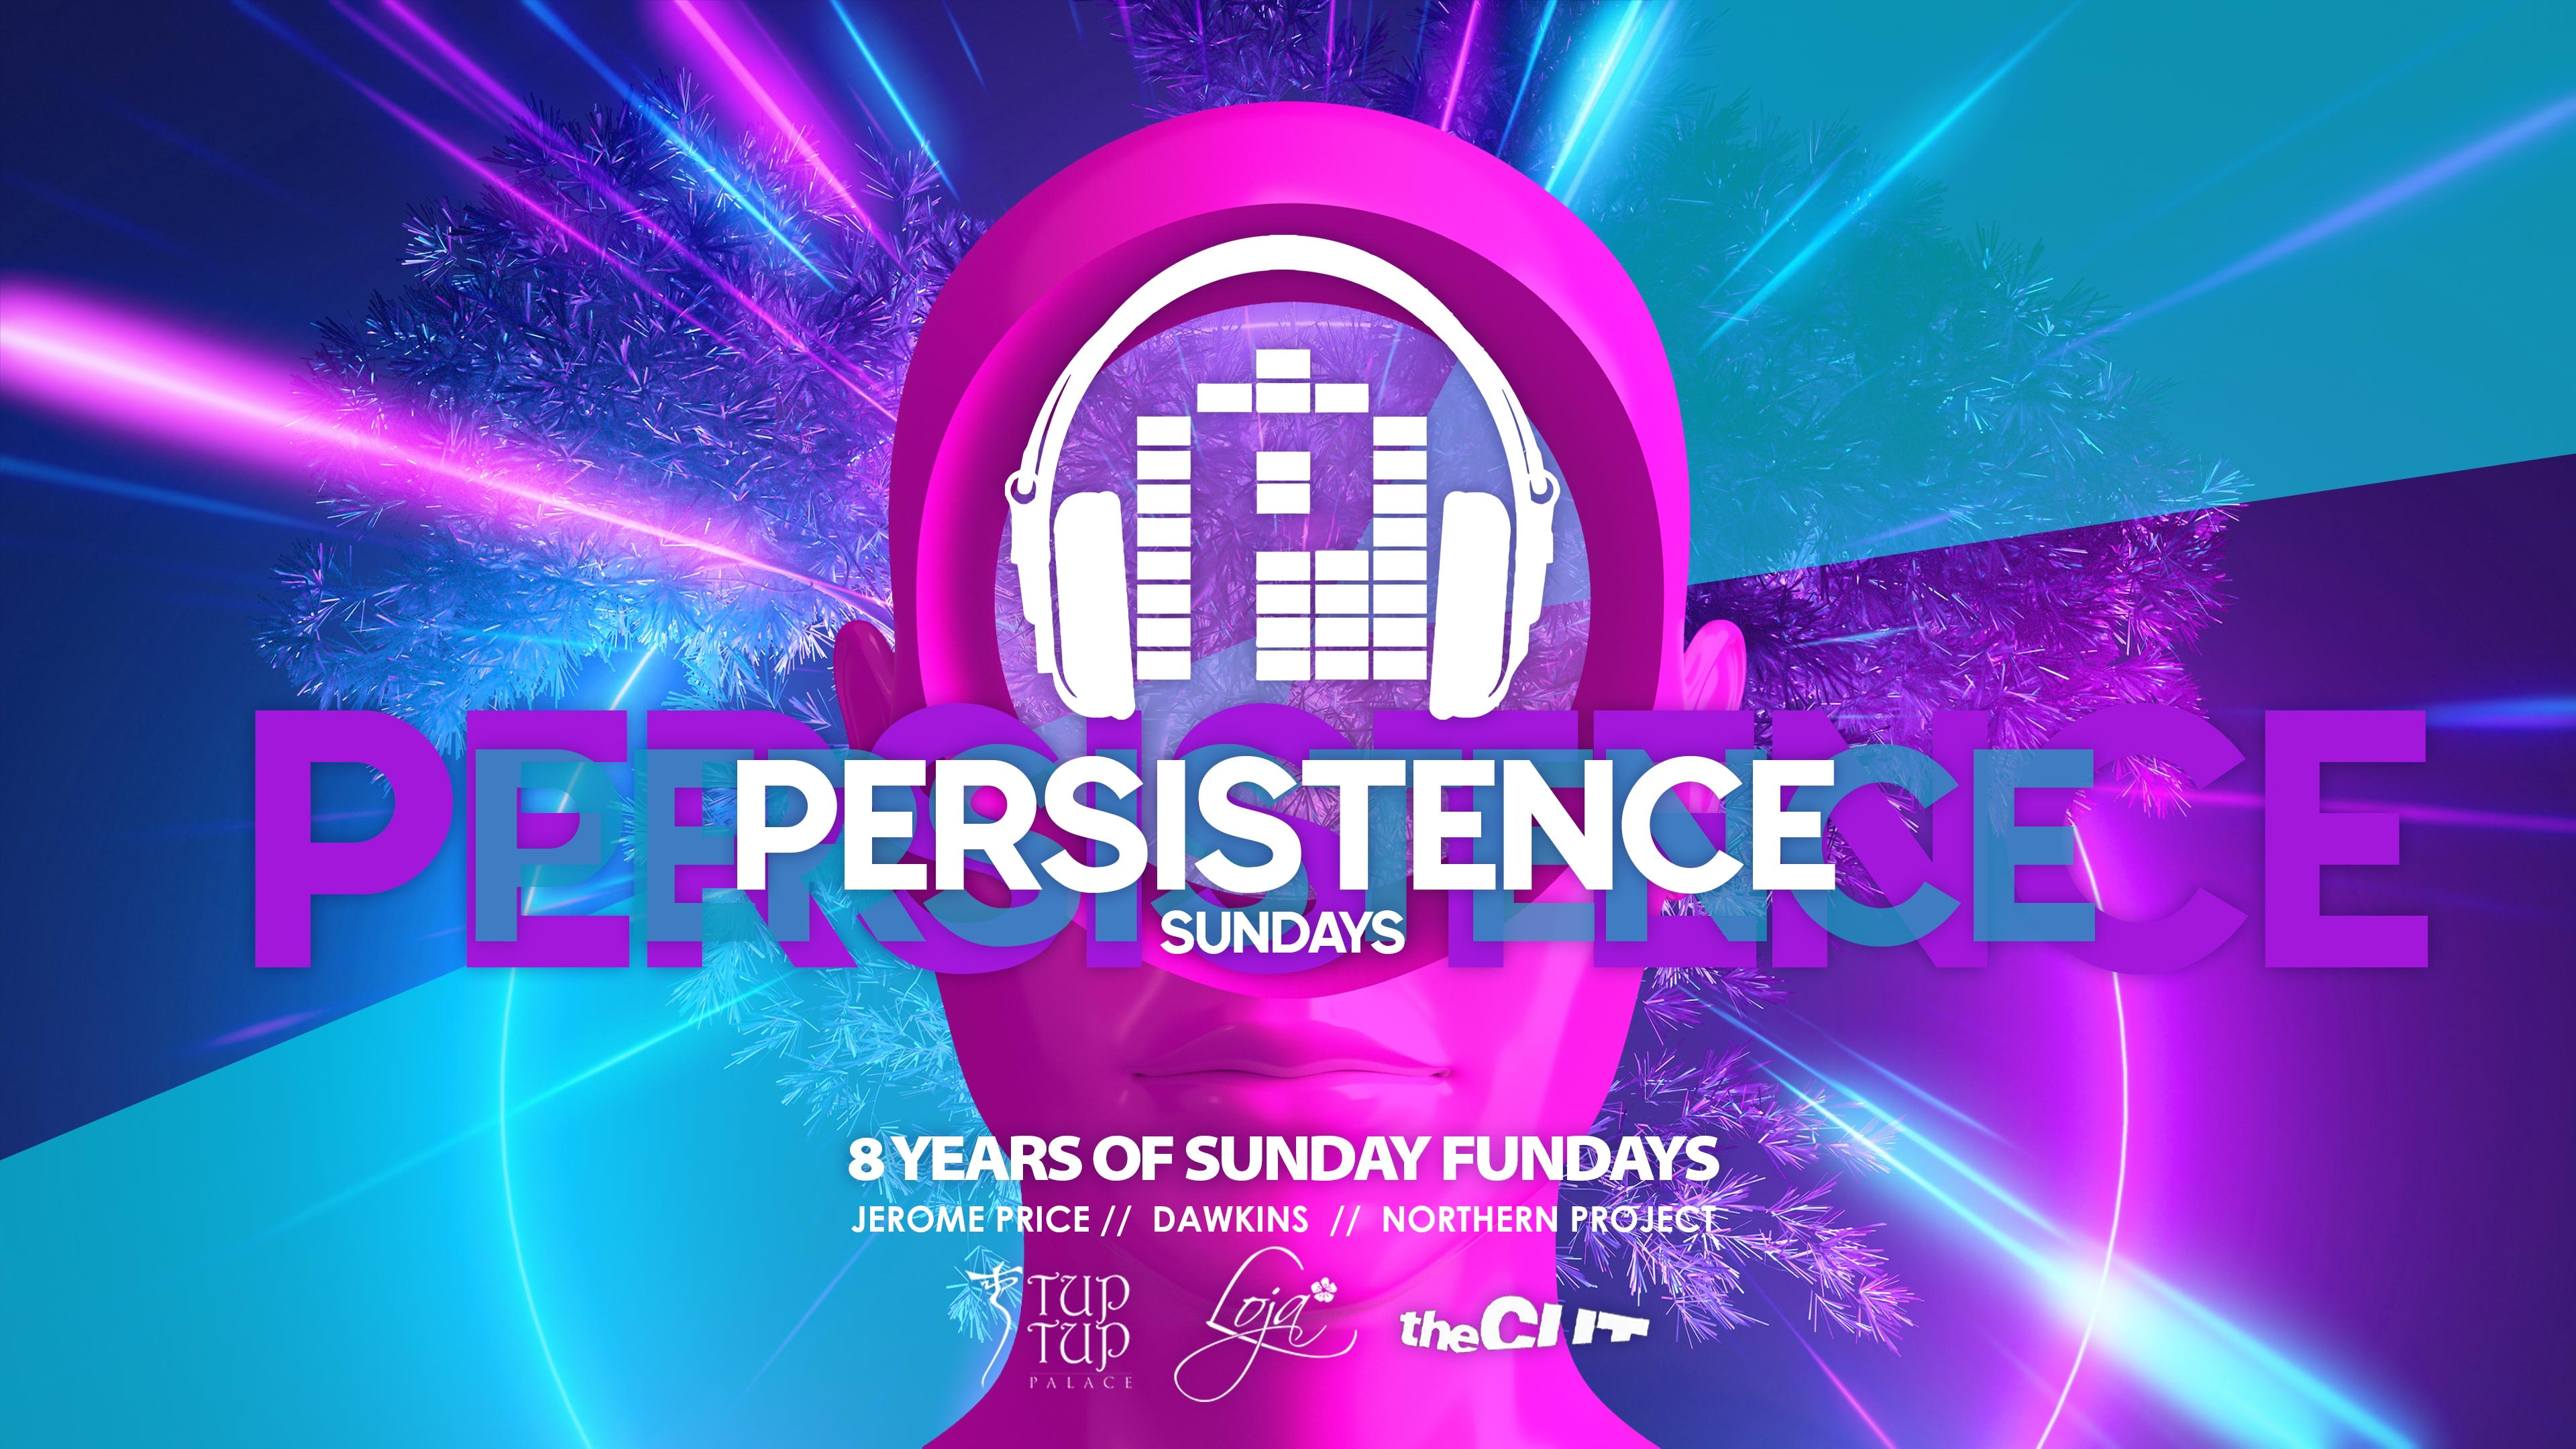 PERSISTENCE   TUP TUP PALACE, THE CUT & LOJA   8th AUGUST *NEW DATE*